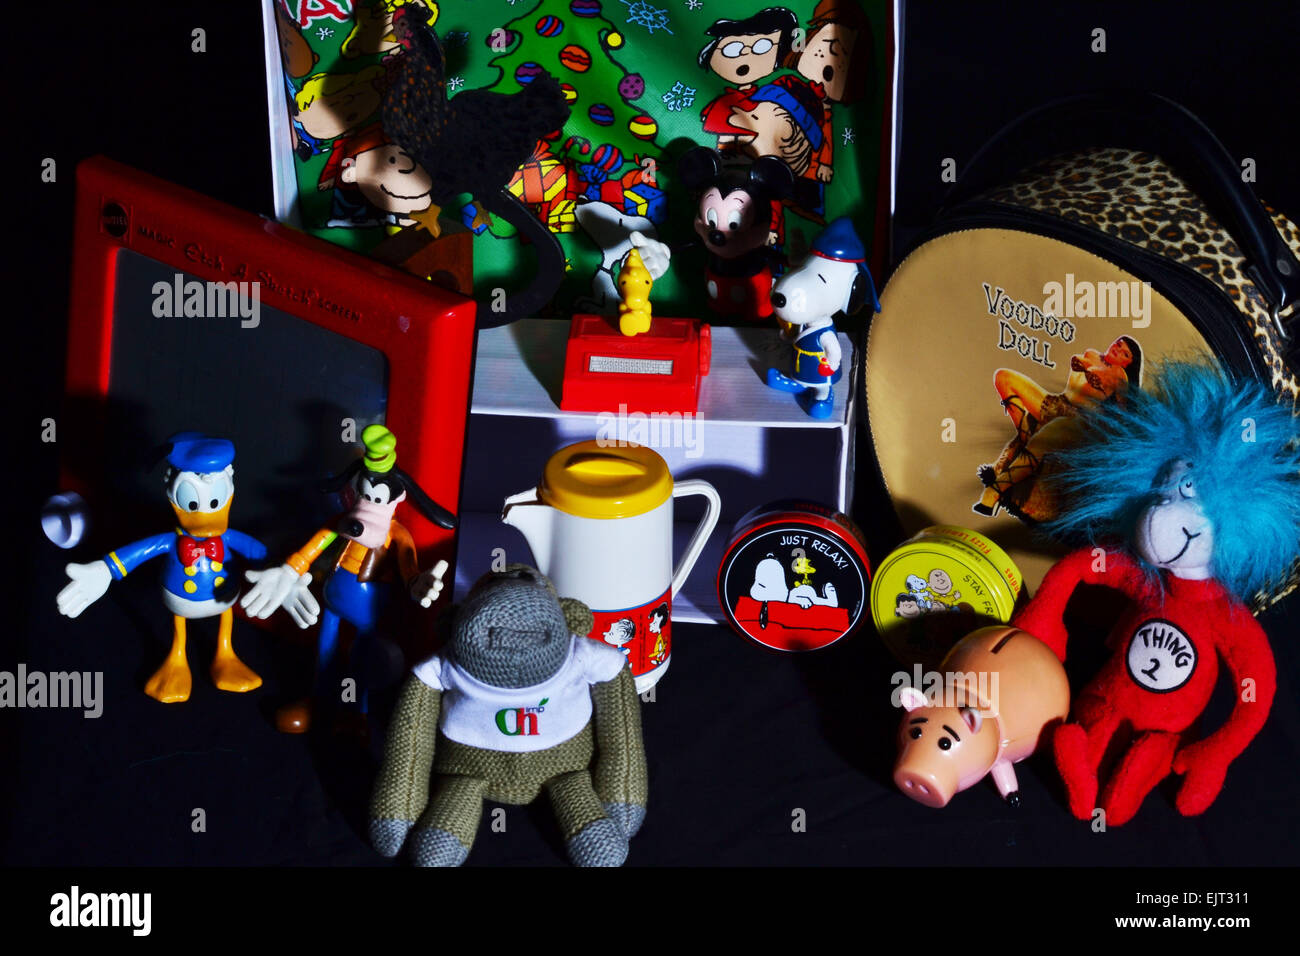 collections, looking down, black background, vintage - Stock Image